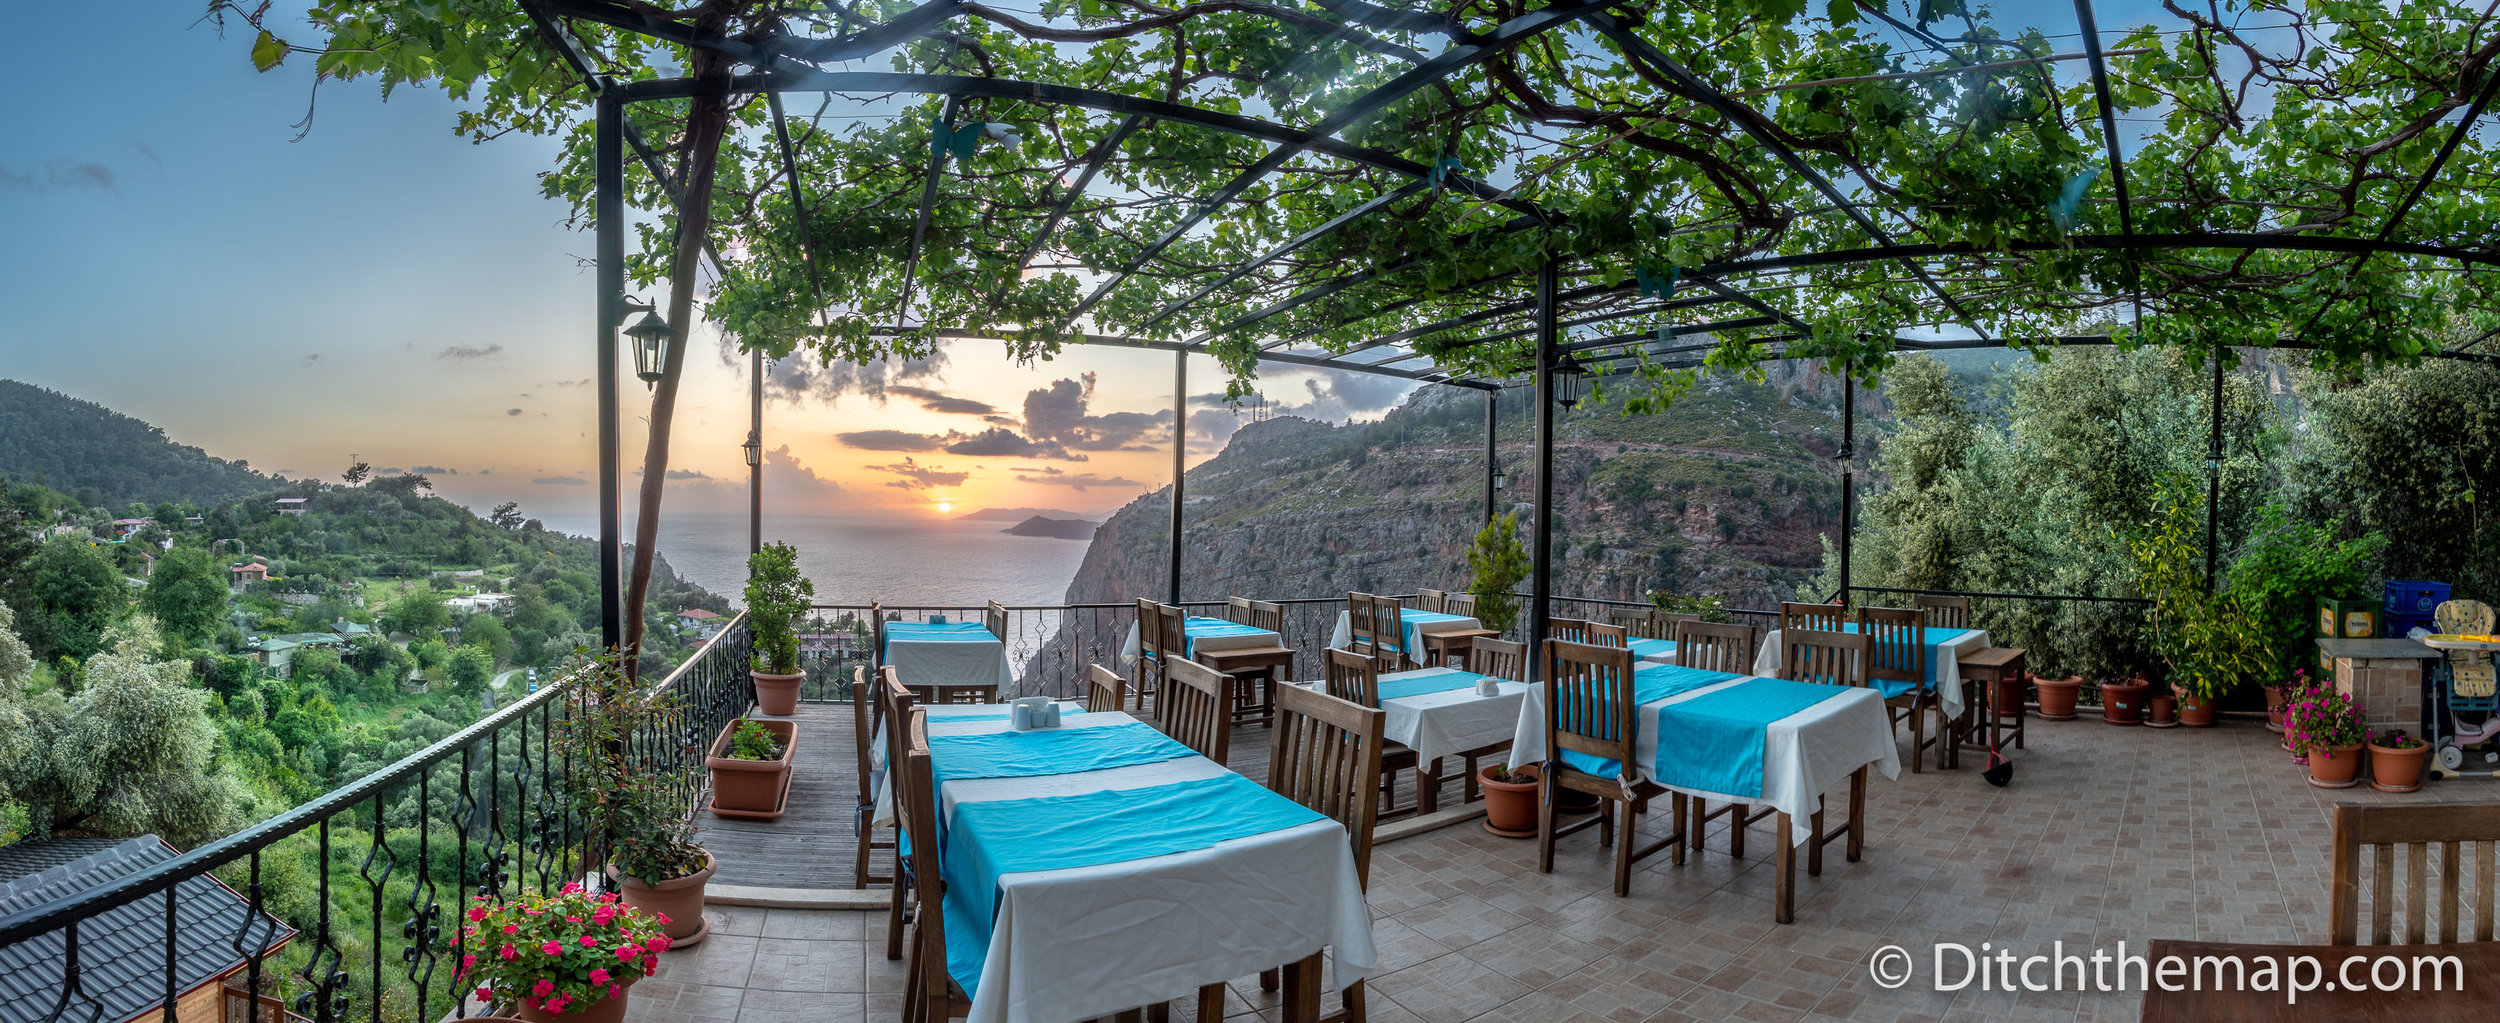 Home-cooked Breakfast and Dinner Served Daily on the Balcony at  Keyif Faralya